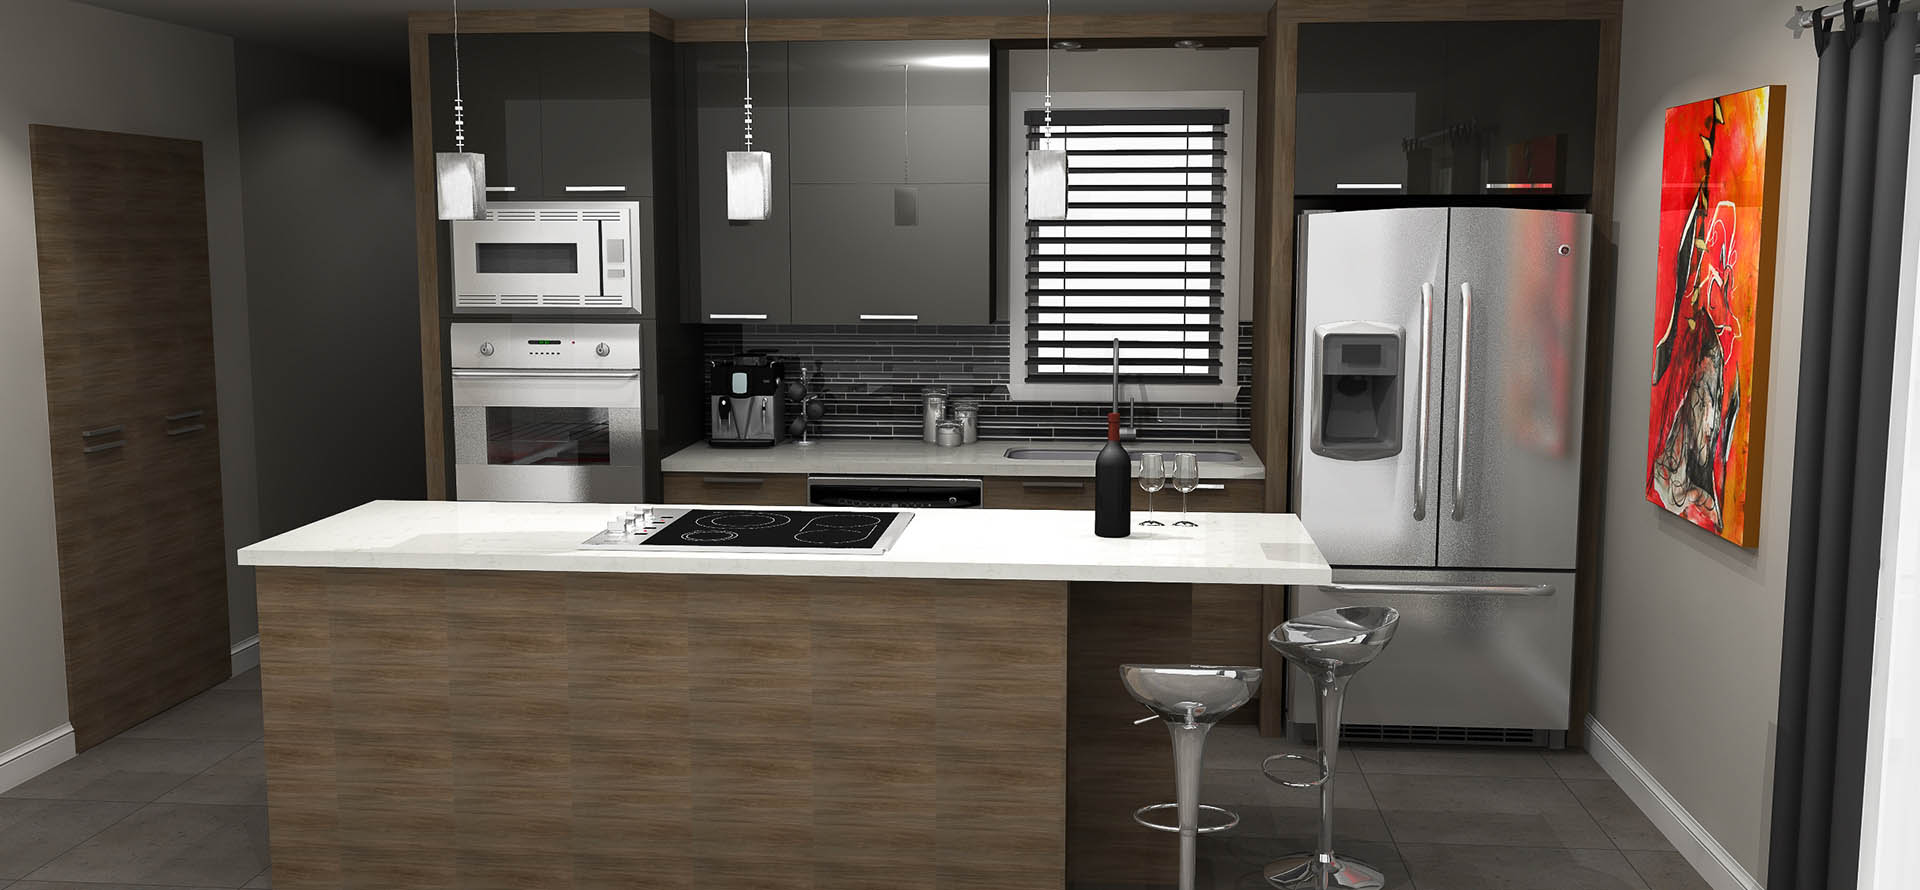 Plan de cuisine en 3d for Ikea conception cuisine 3d